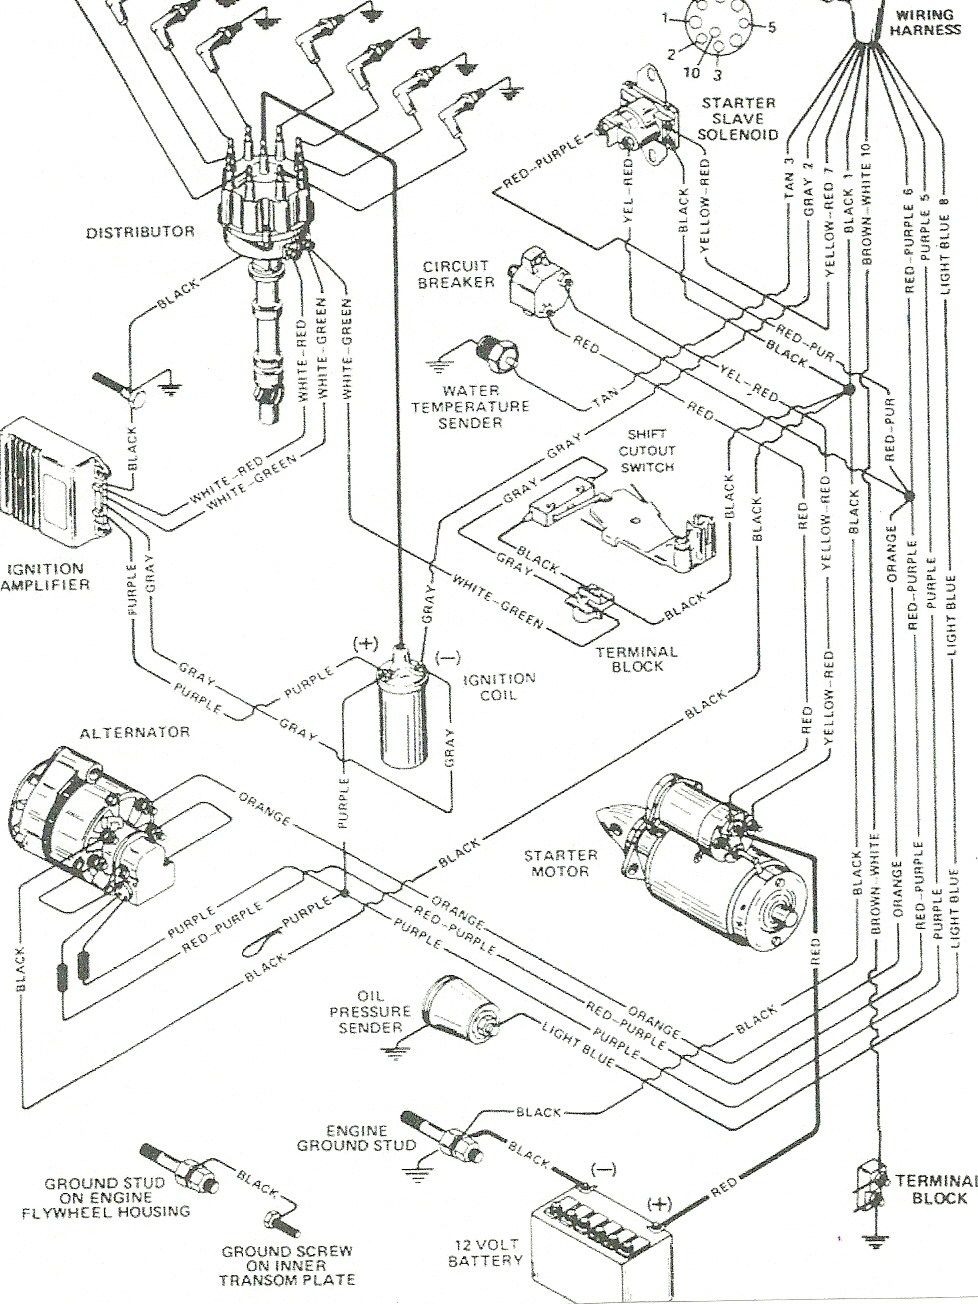 140 mercruiser wiring diagram wiring diagram for mercruiser 140 diagram  electrical diagram  wiring diagram for mercruiser 140